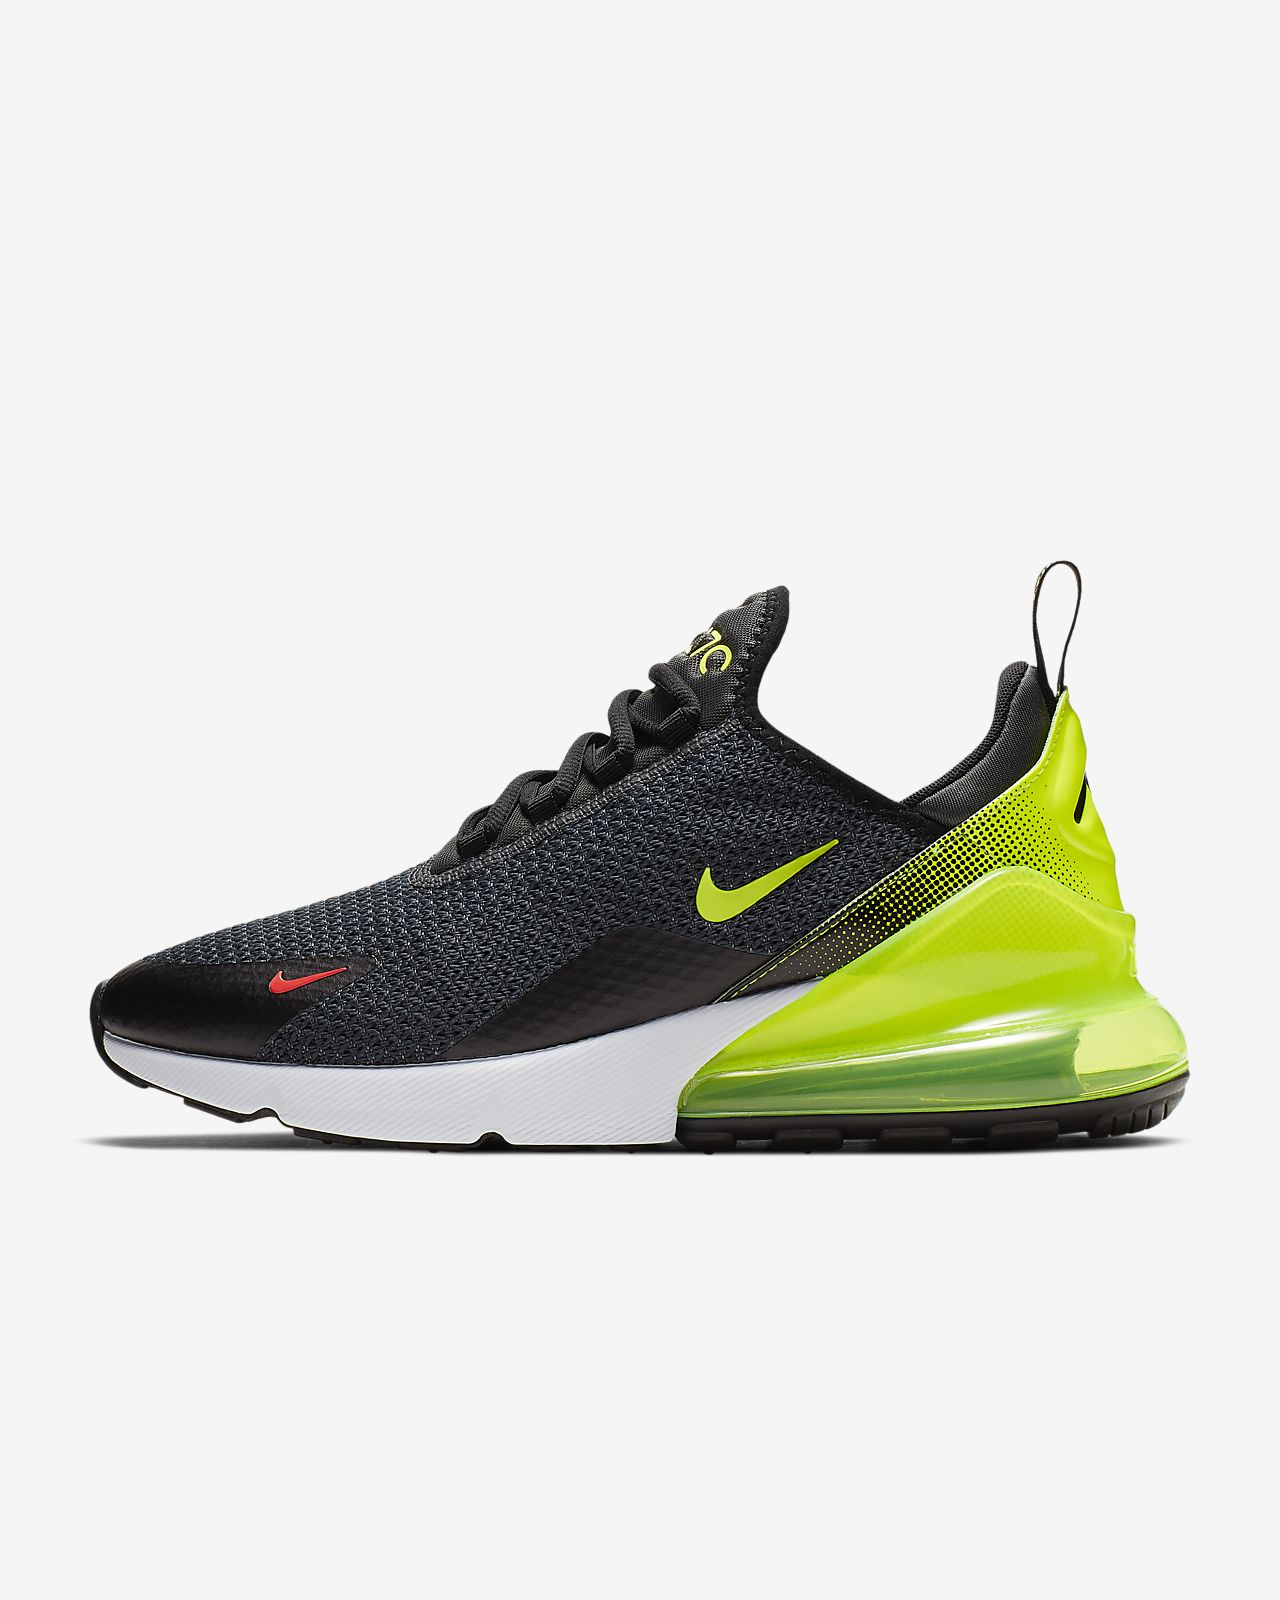 basquette nike air max 270